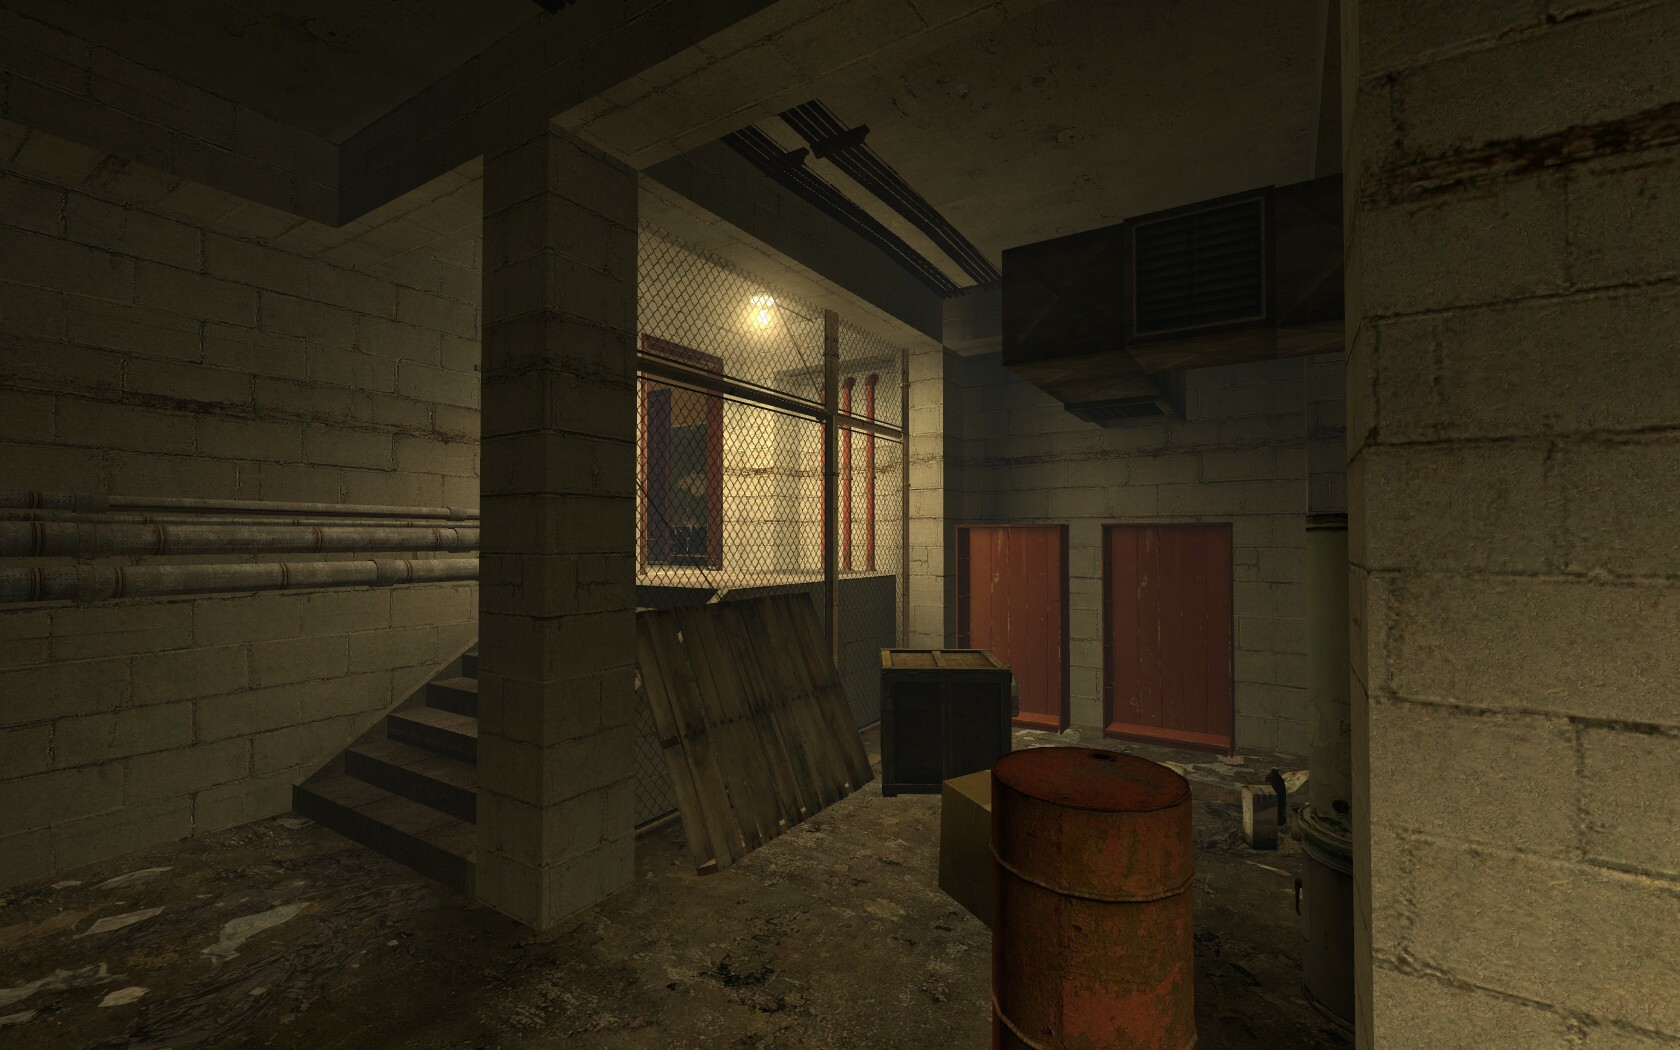 The player has to move through this room at a fast pace so a light has been placed next to the exit to help guide the player out of the area.